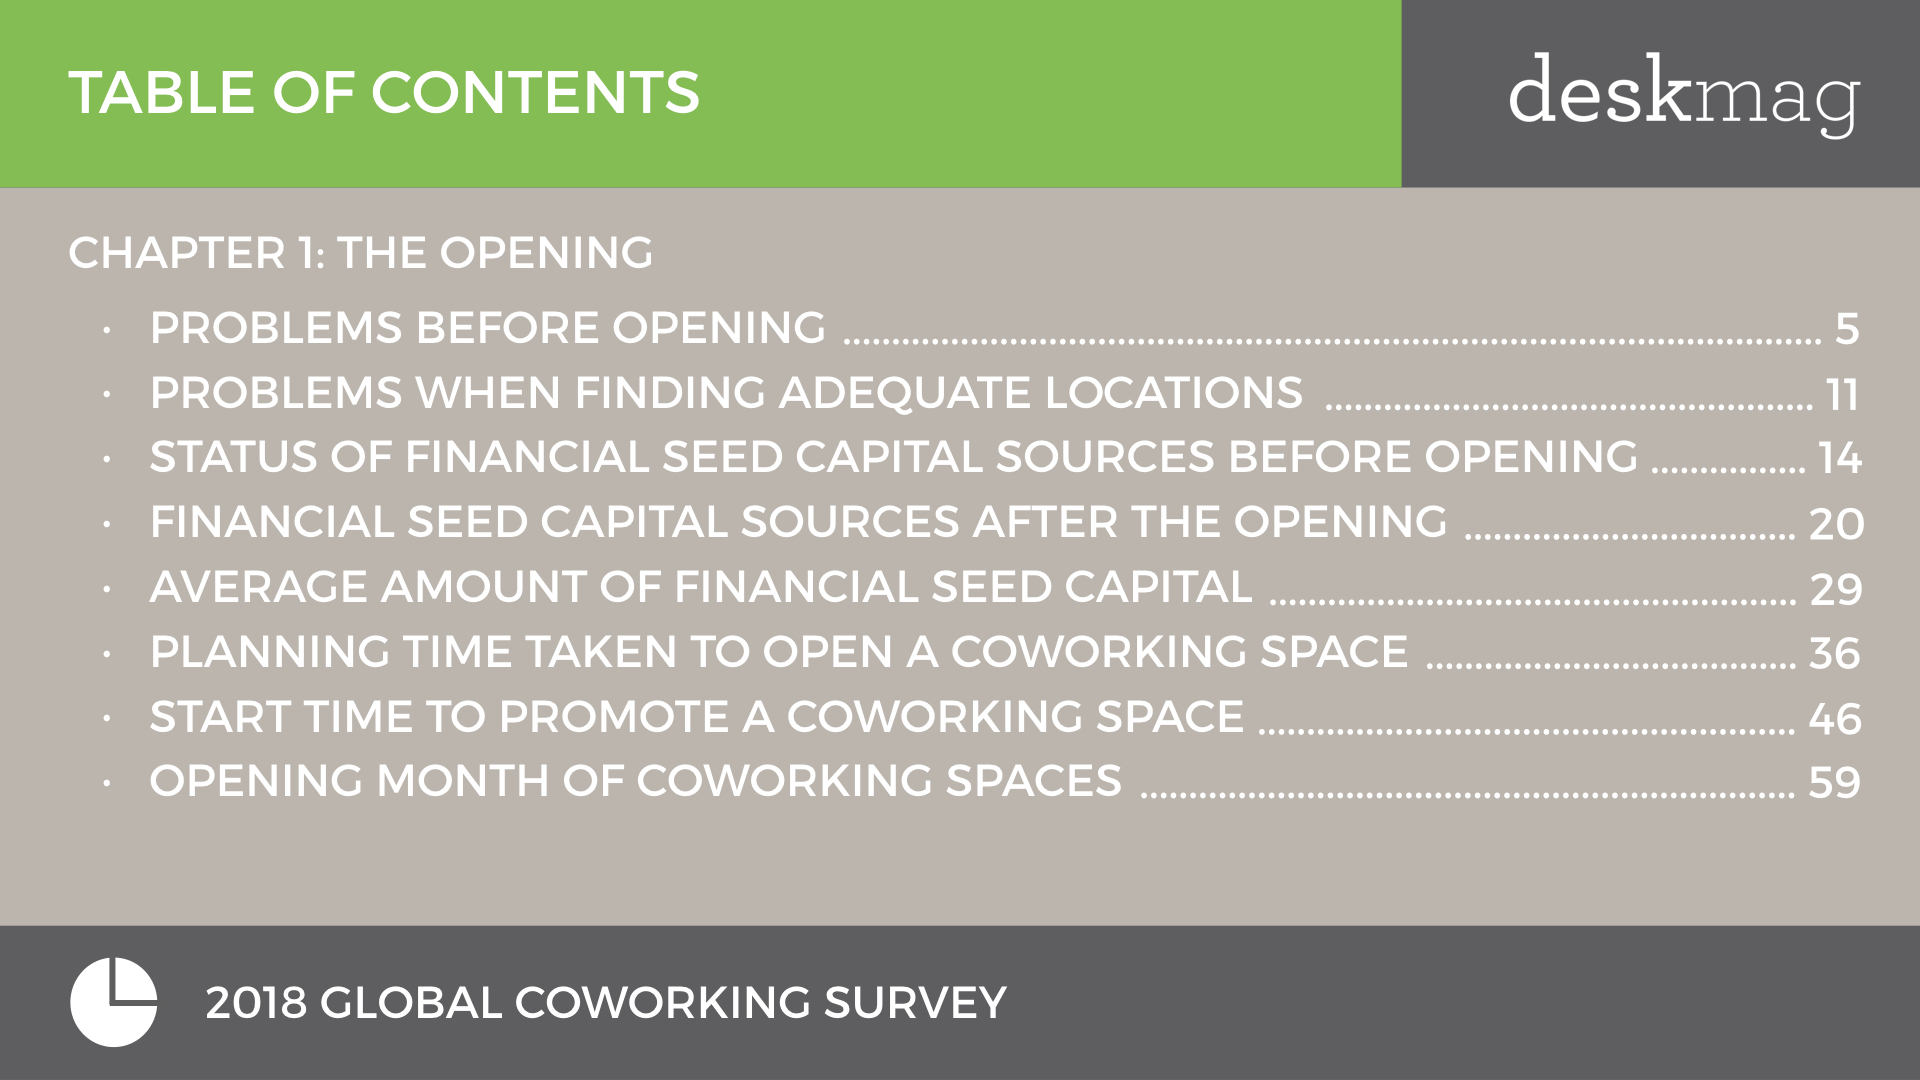 2018 GCS - OPENING COWORKING SPACES.002.jpeg